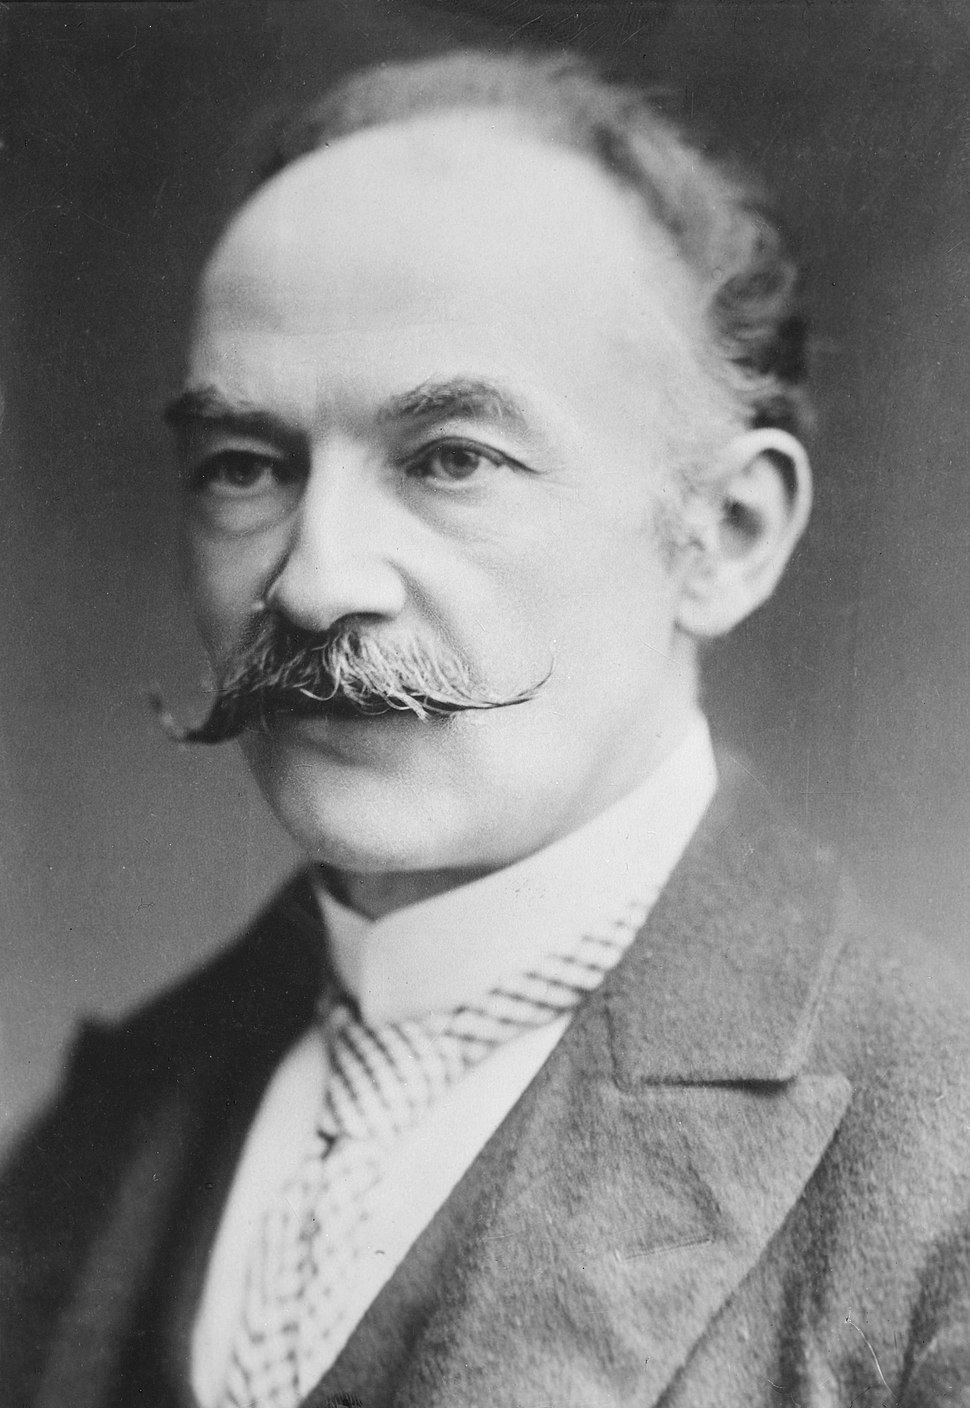 Hardy between about 1910 and 1915